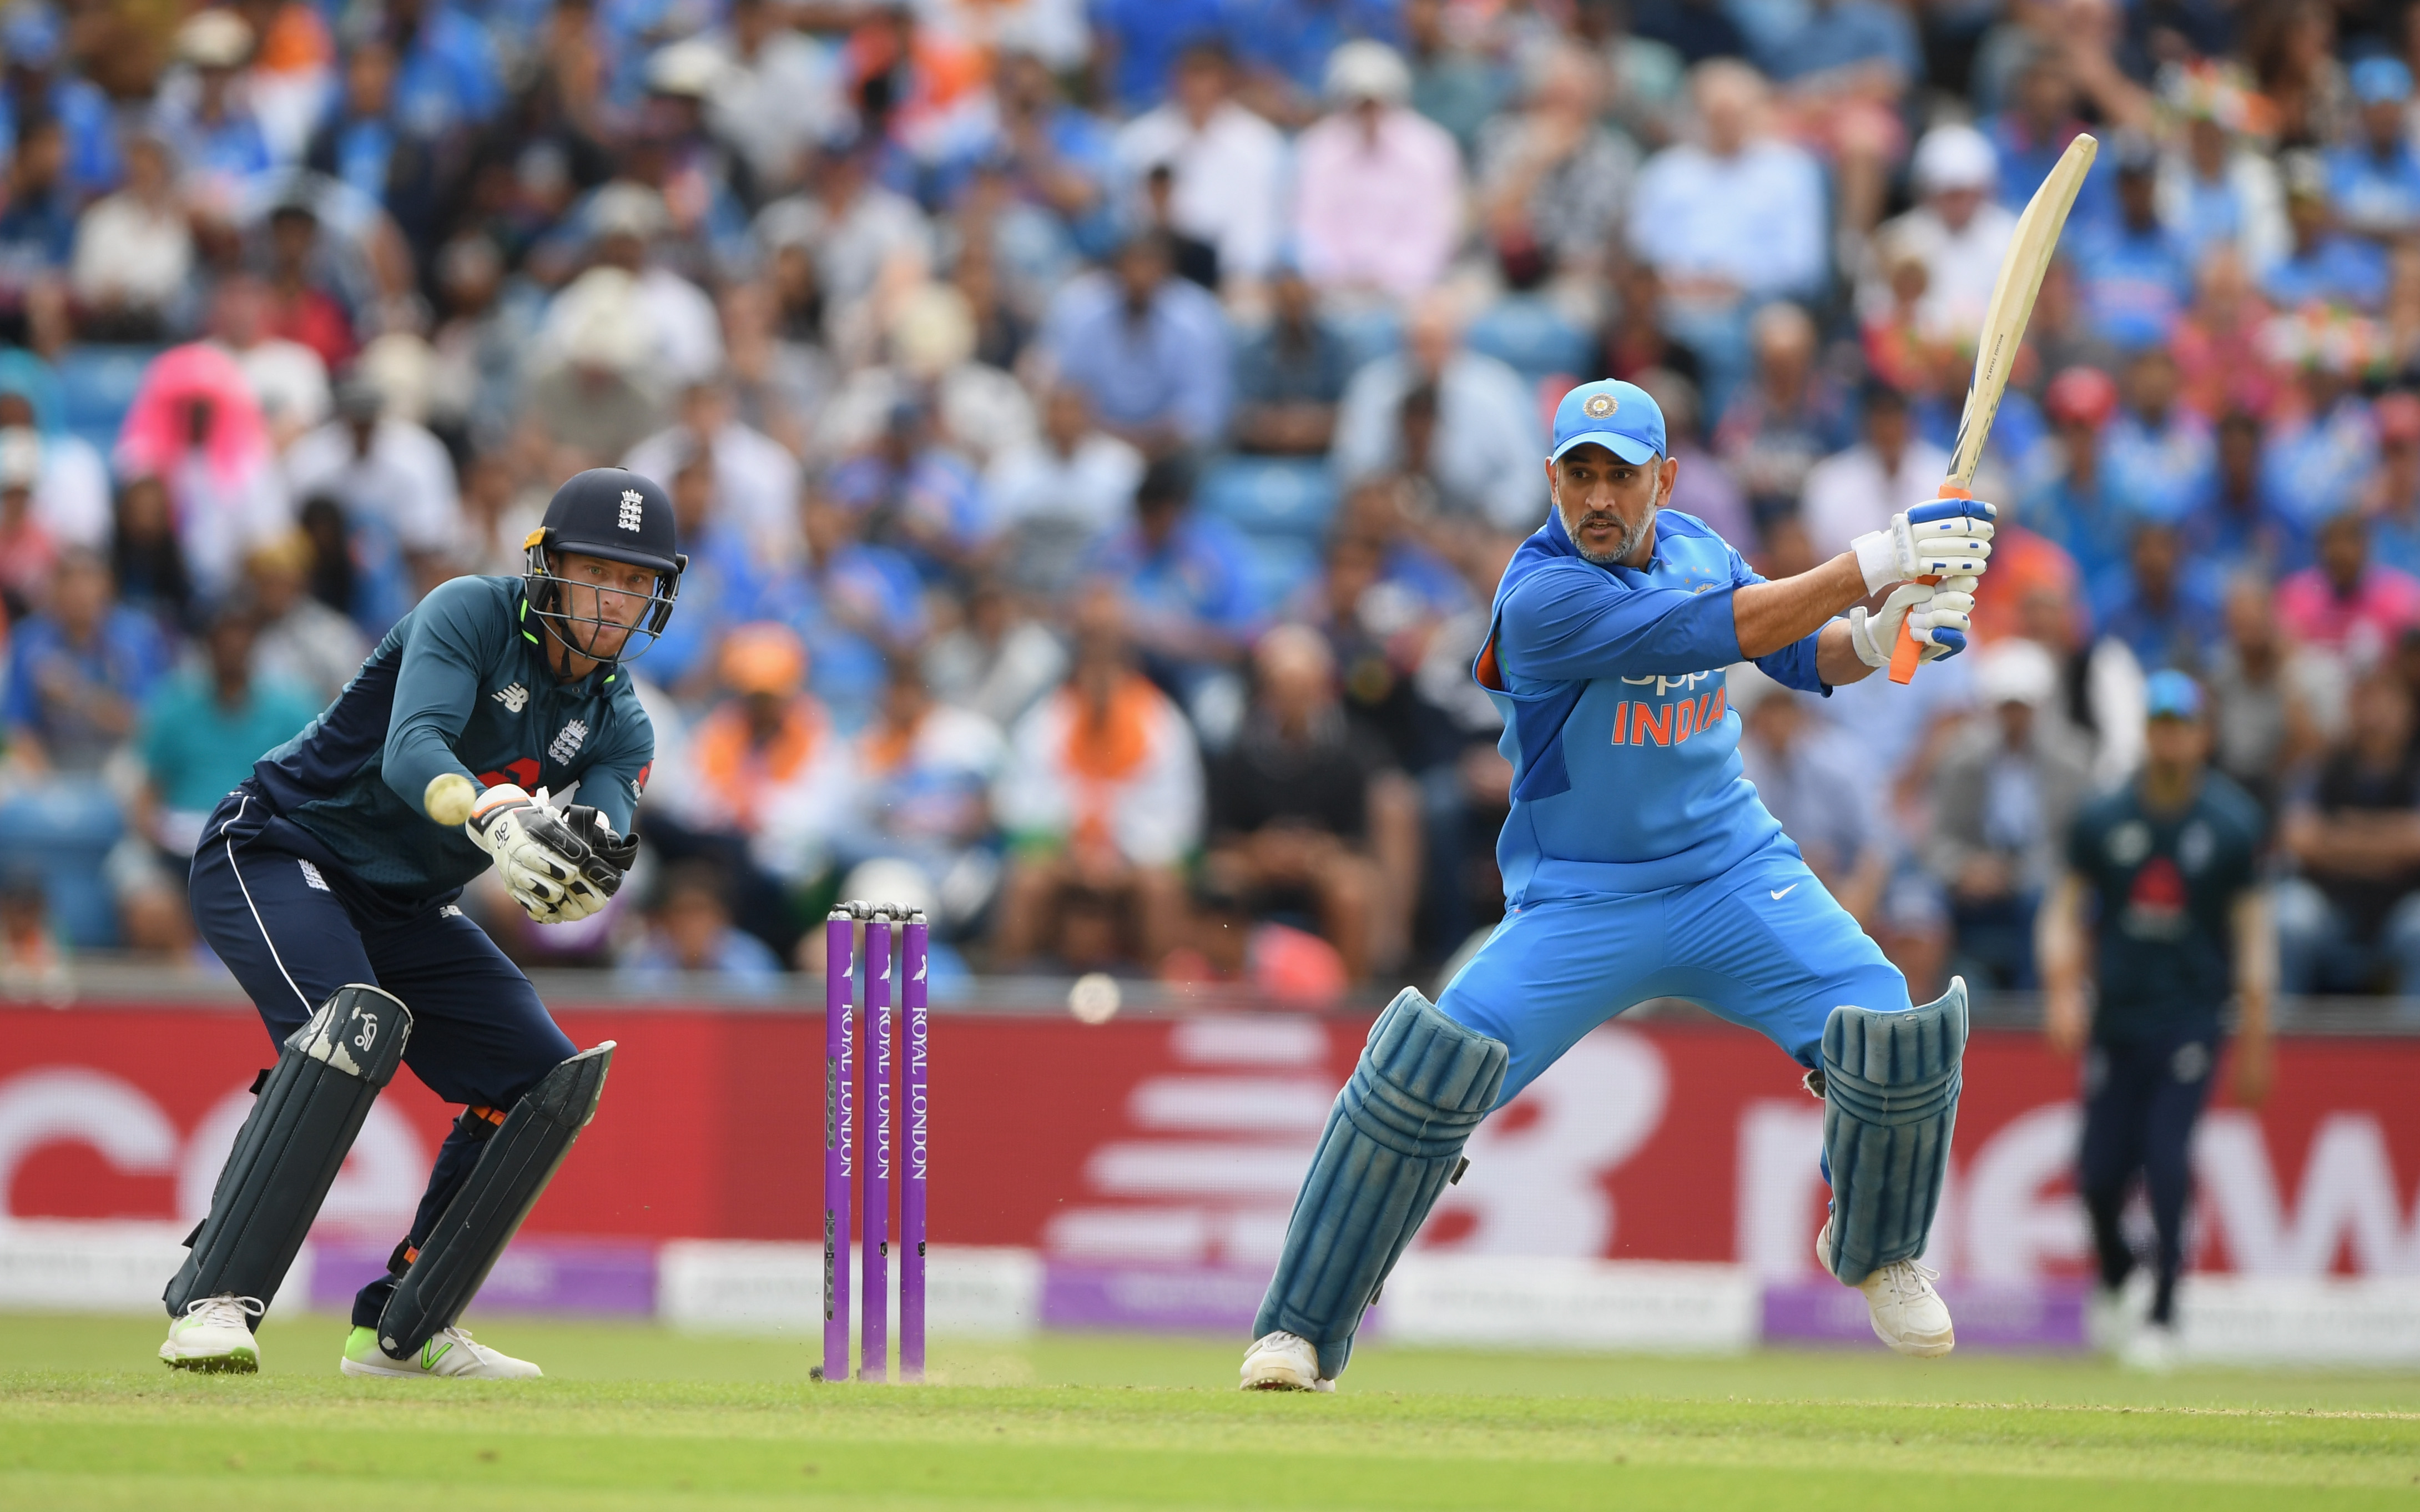 MS Dhoni in action during the recently held limited-overs series against England | Getty